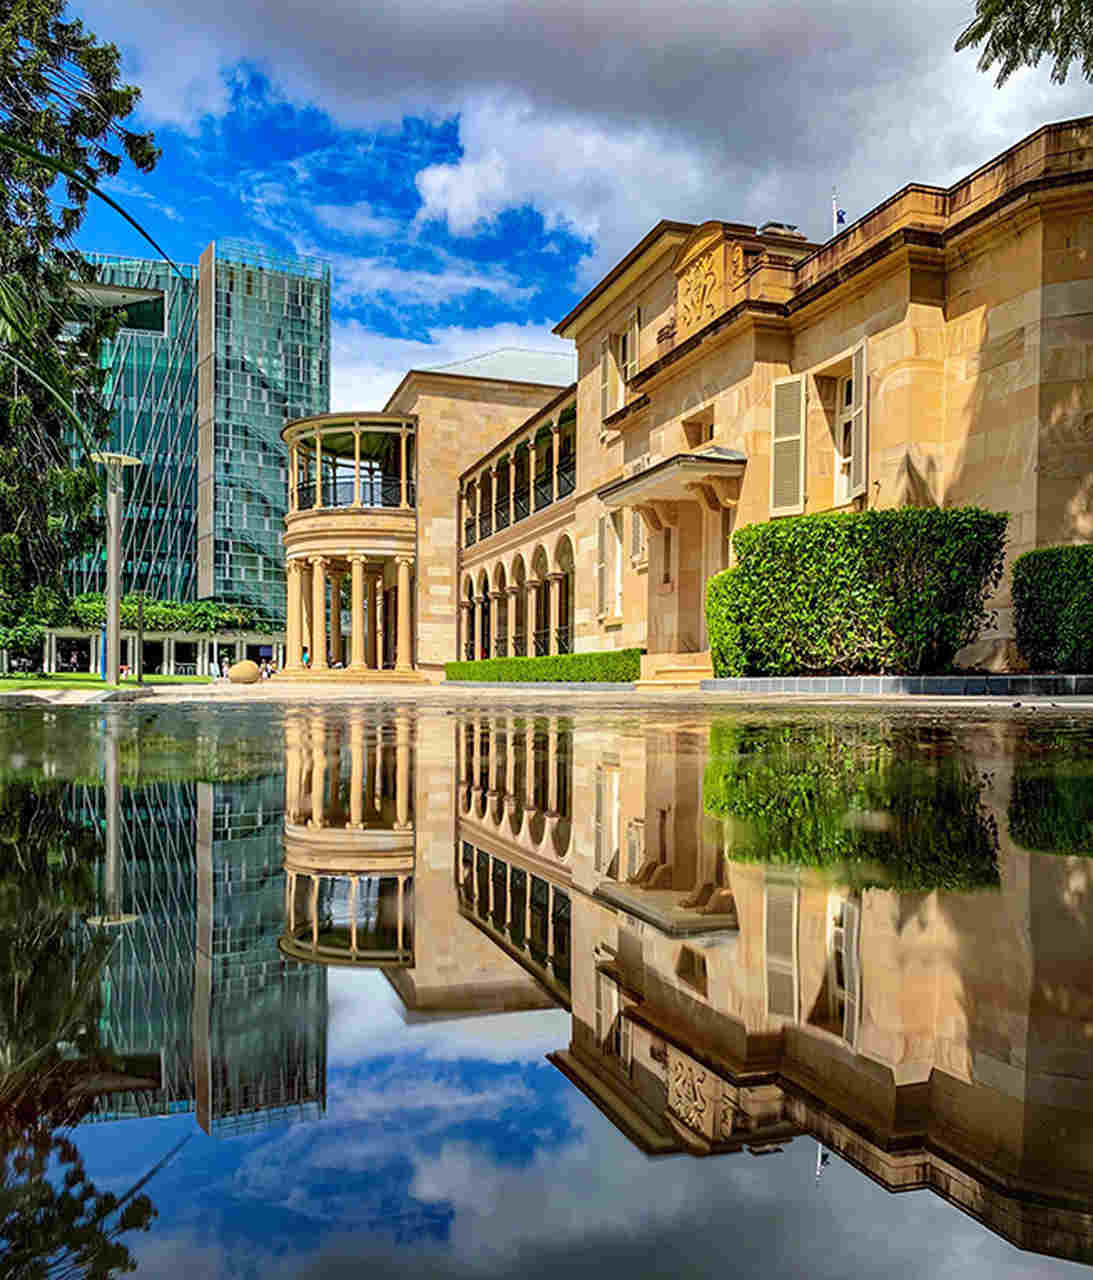 Reflection, Water, Building, Property, Architecture, Waterway, Reflecting pool, Sky, Real estate, House, Condominium, Home, Mixed-use, Estate, Facade, Canal, Apartment, Room, Residential area, City, QUT Gardens Point Campus